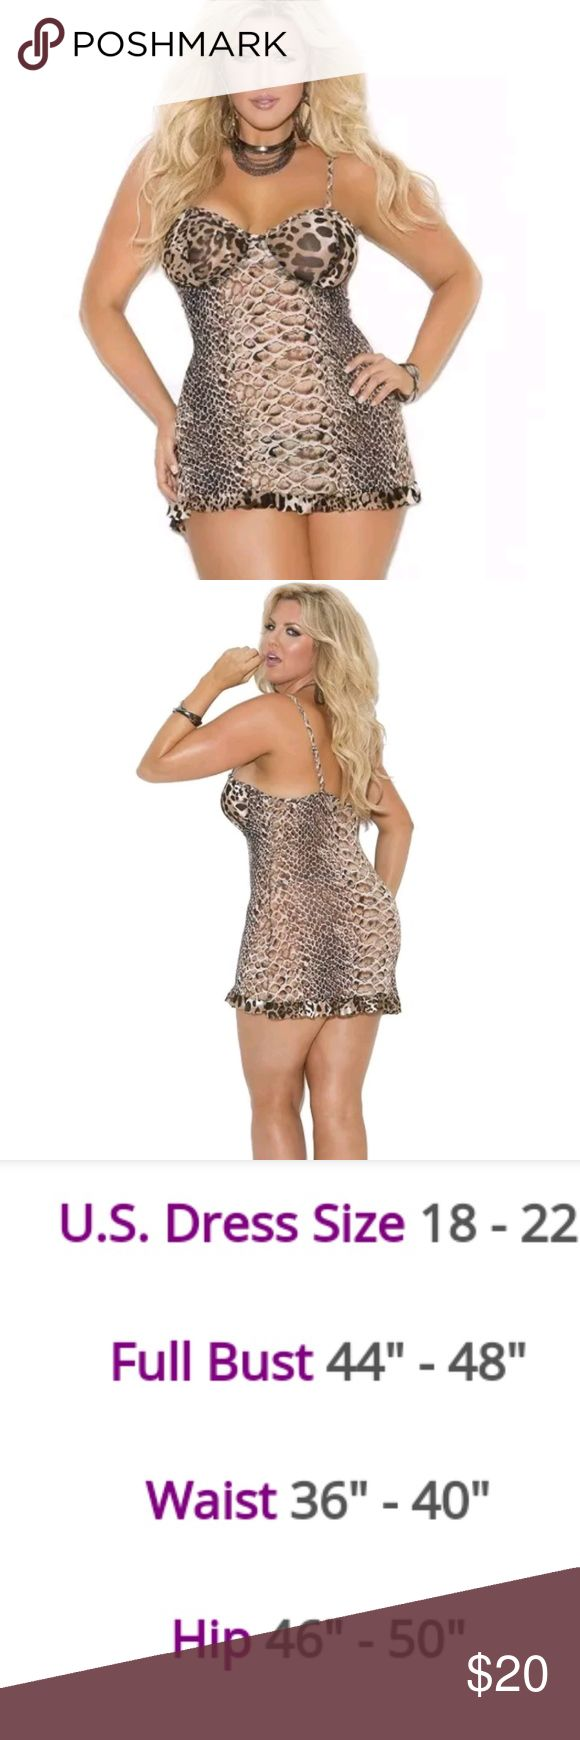 Plus size lingerie Best leopard print underwire. Very sexy. Makes a great holiday fift Ricosavannah Intimates & Sleepwear Chemises & Slips